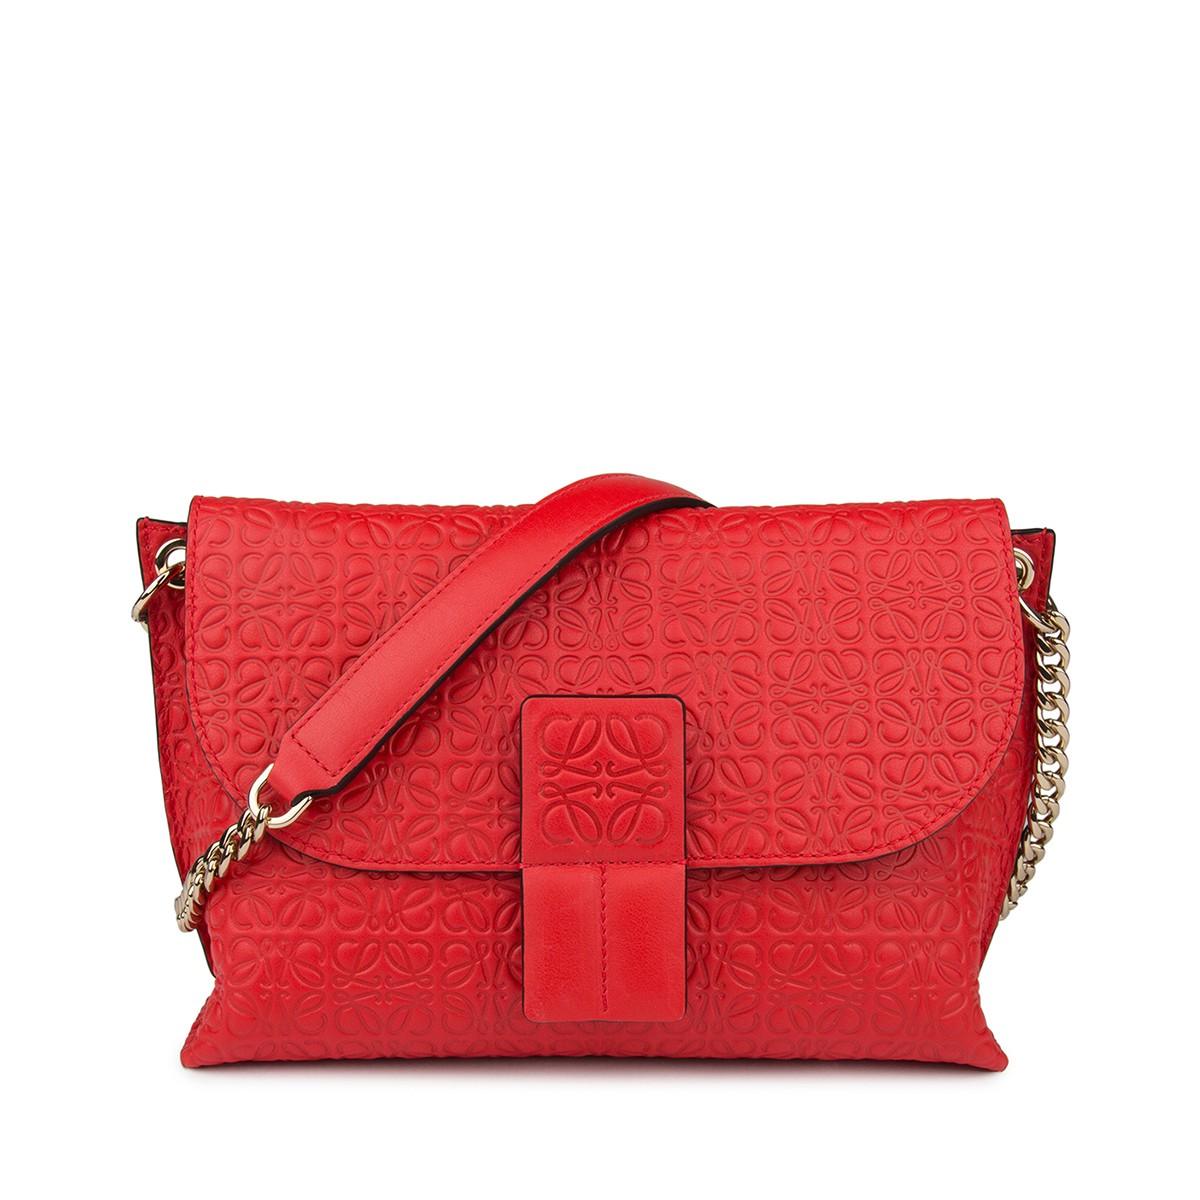 Avenue Bag in Red